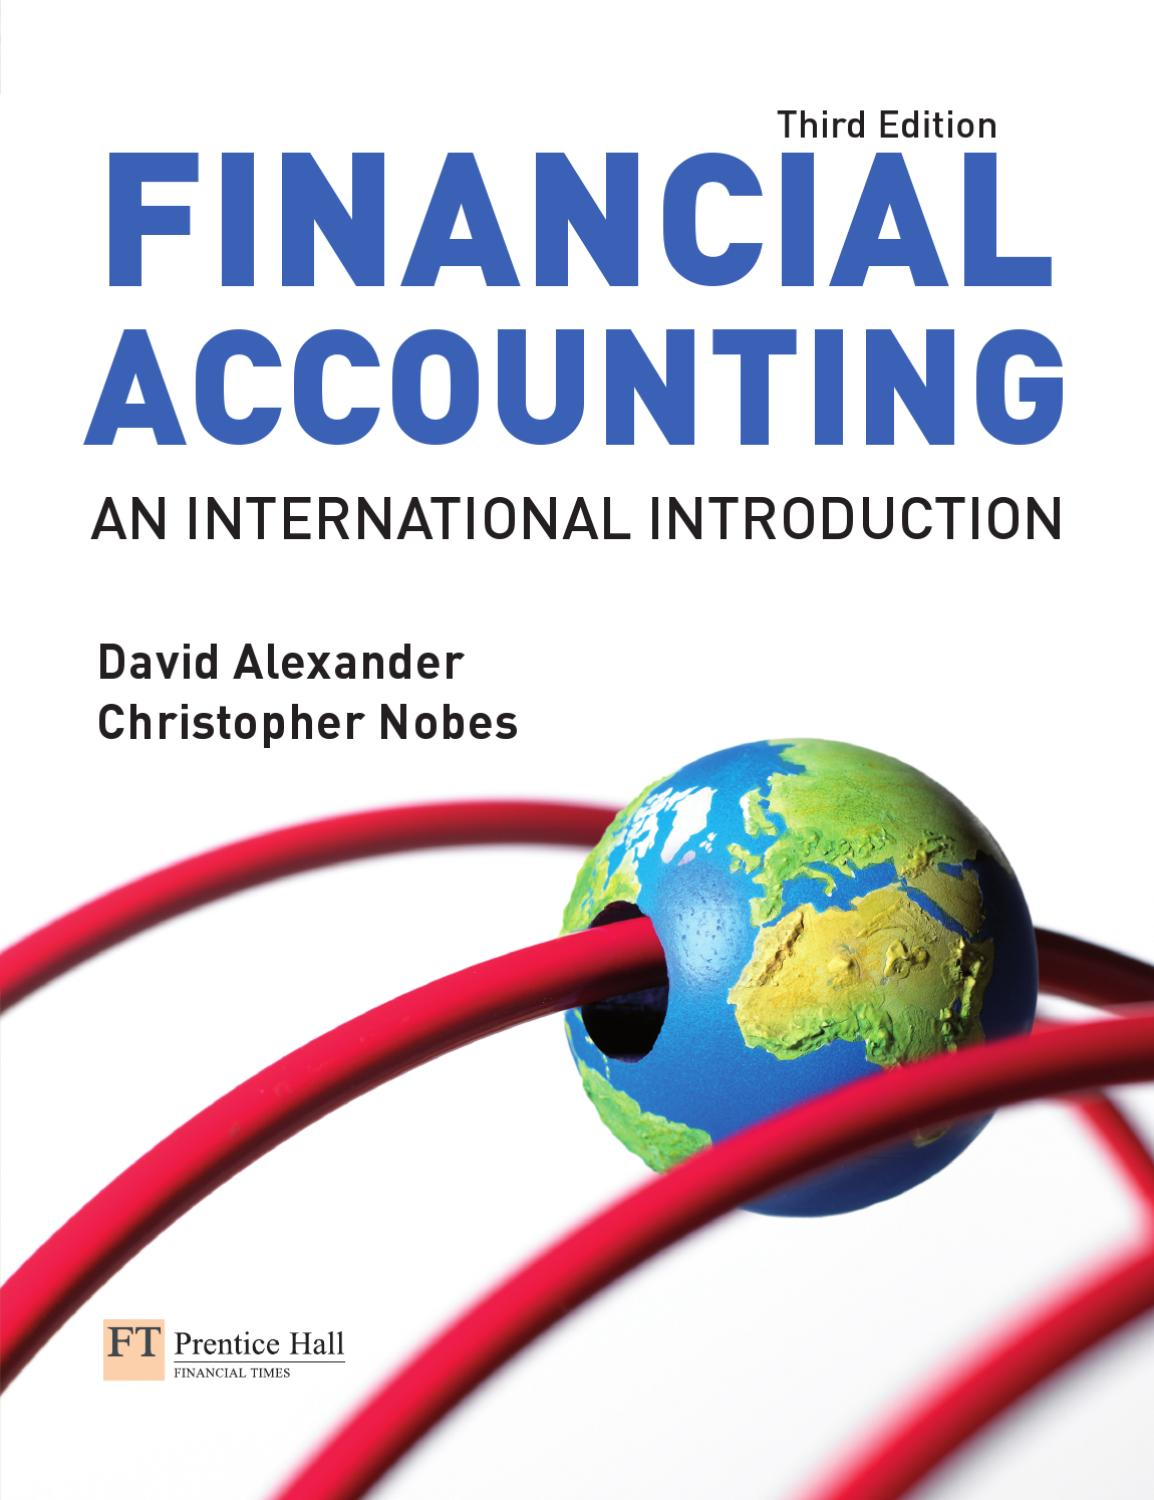 financial accounting is subjective not objective accounting essay This essay is to discuss how financial accounting information is objective in a true accounting  financial accounting is subjective not objective accounting essay.